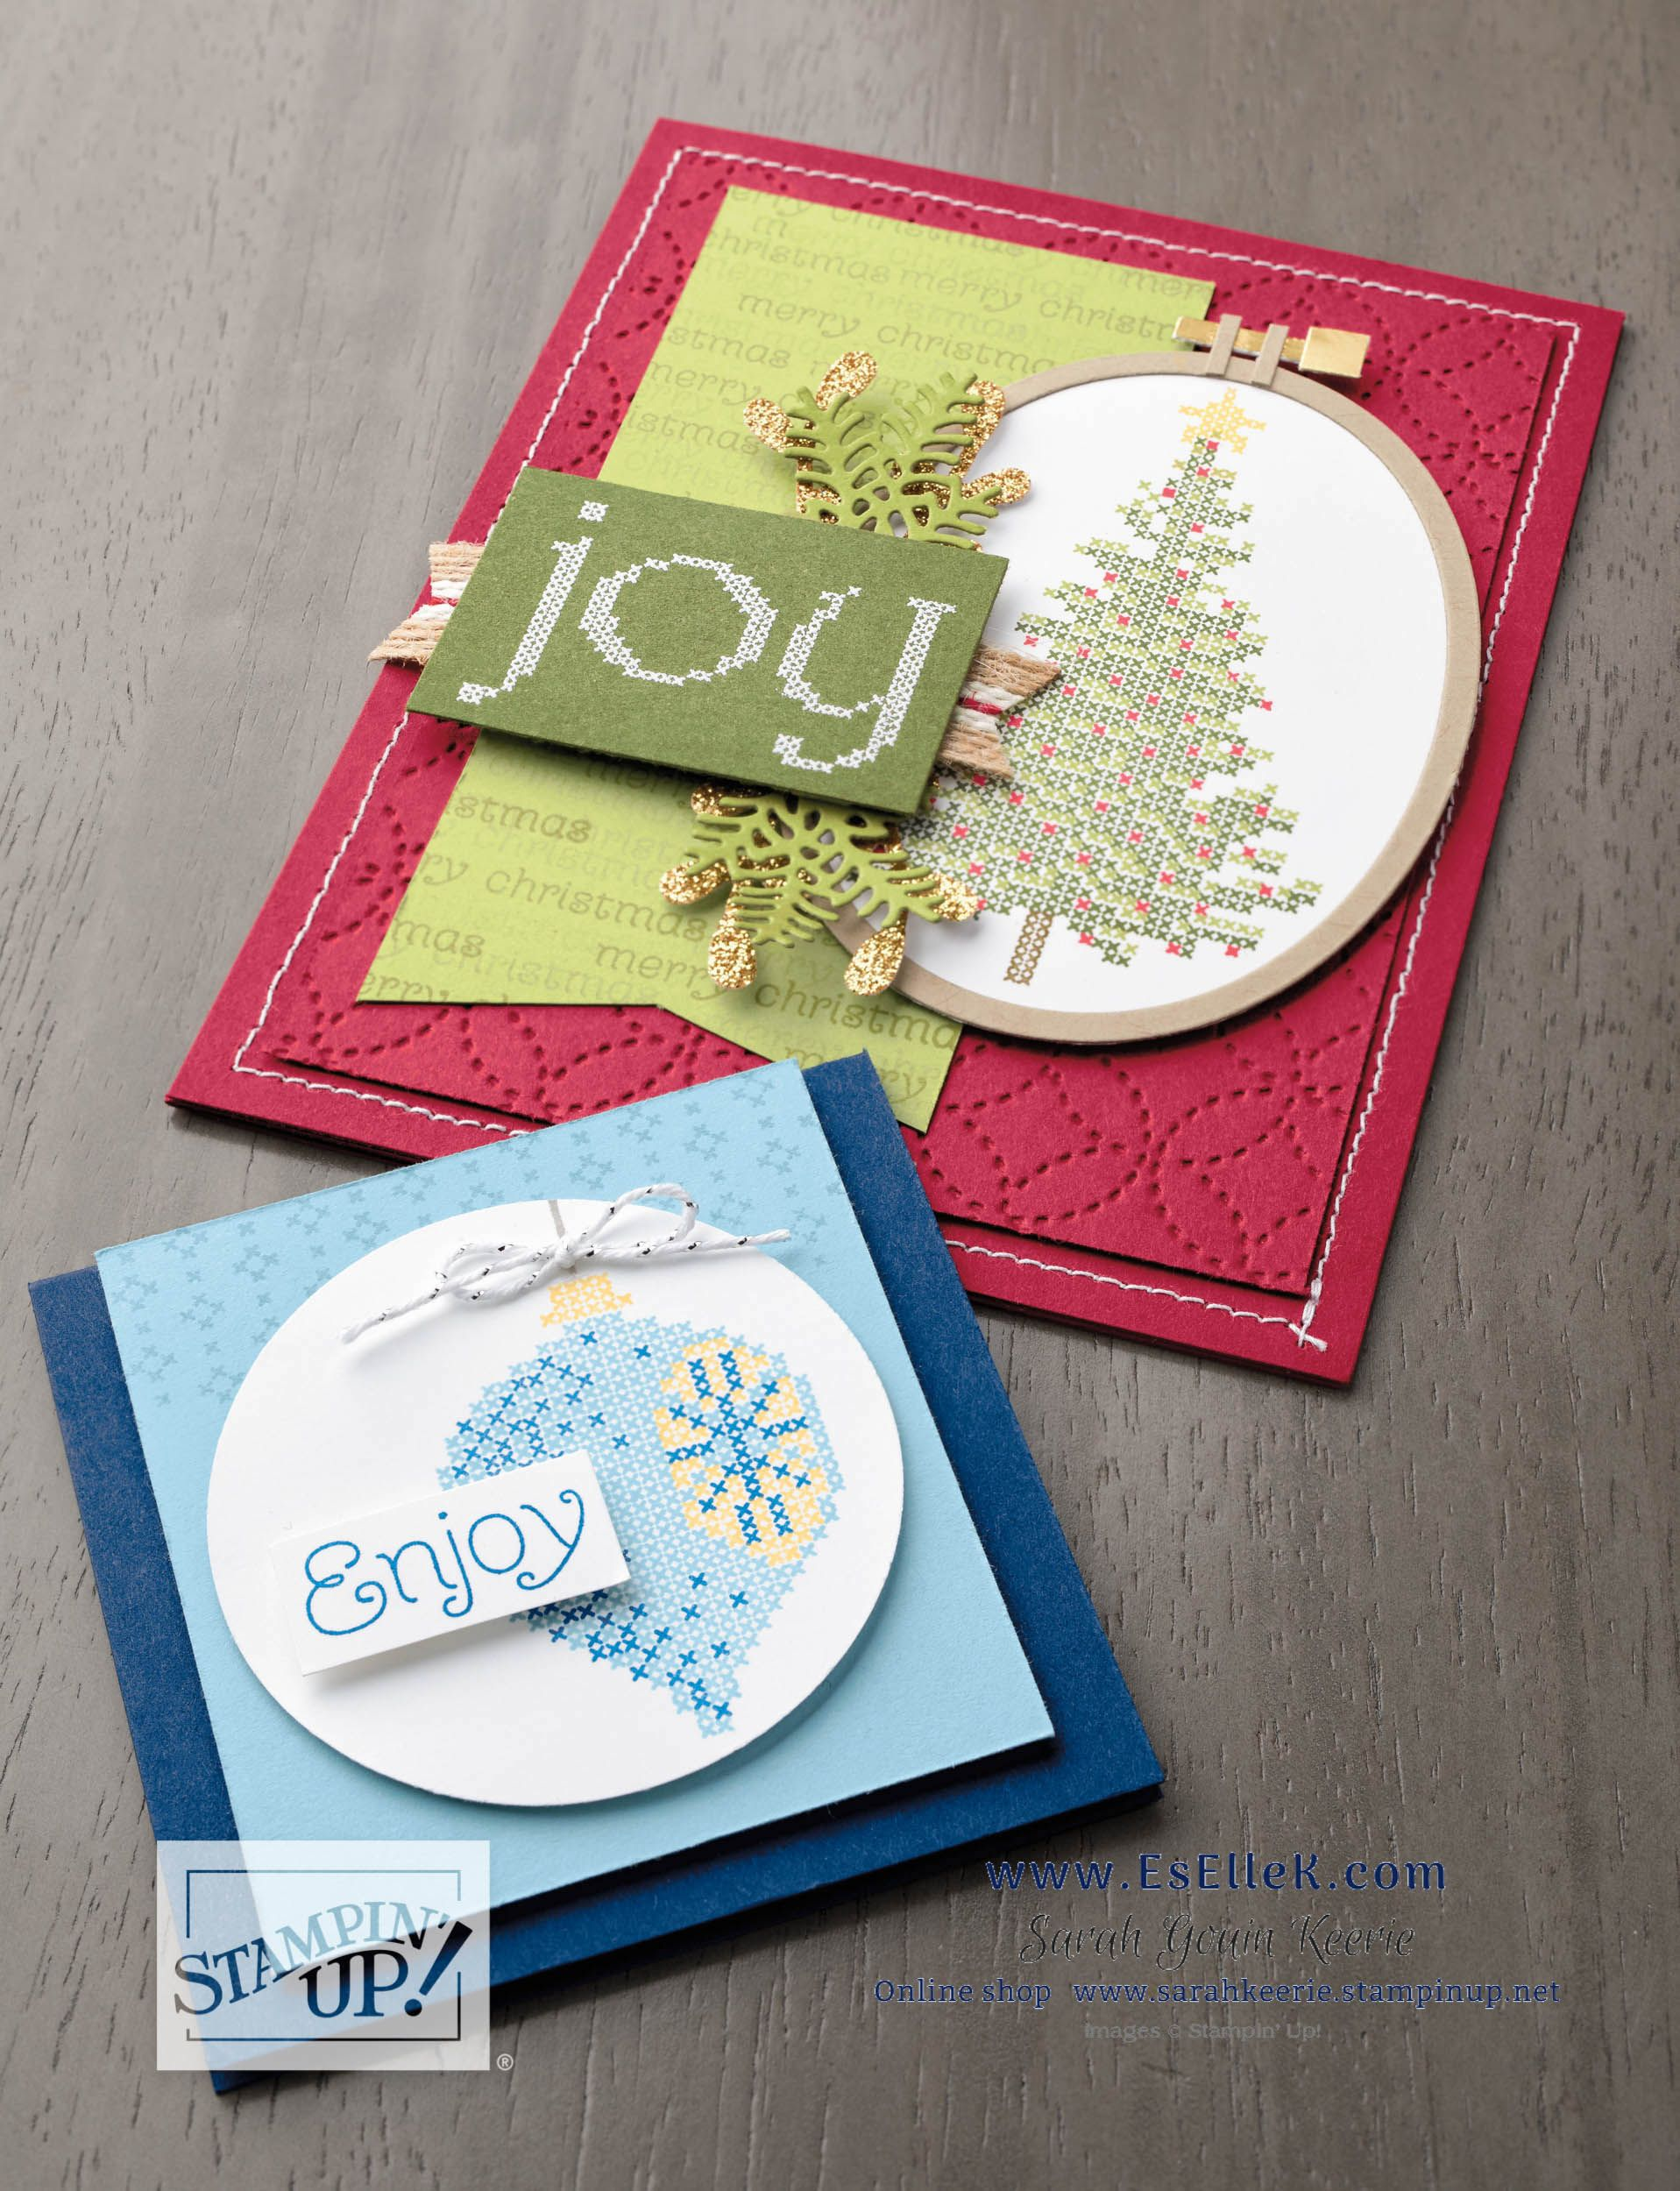 stampin up card ideas for 2019 holiday catalog ideas 2019. Black Bedroom Furniture Sets. Home Design Ideas